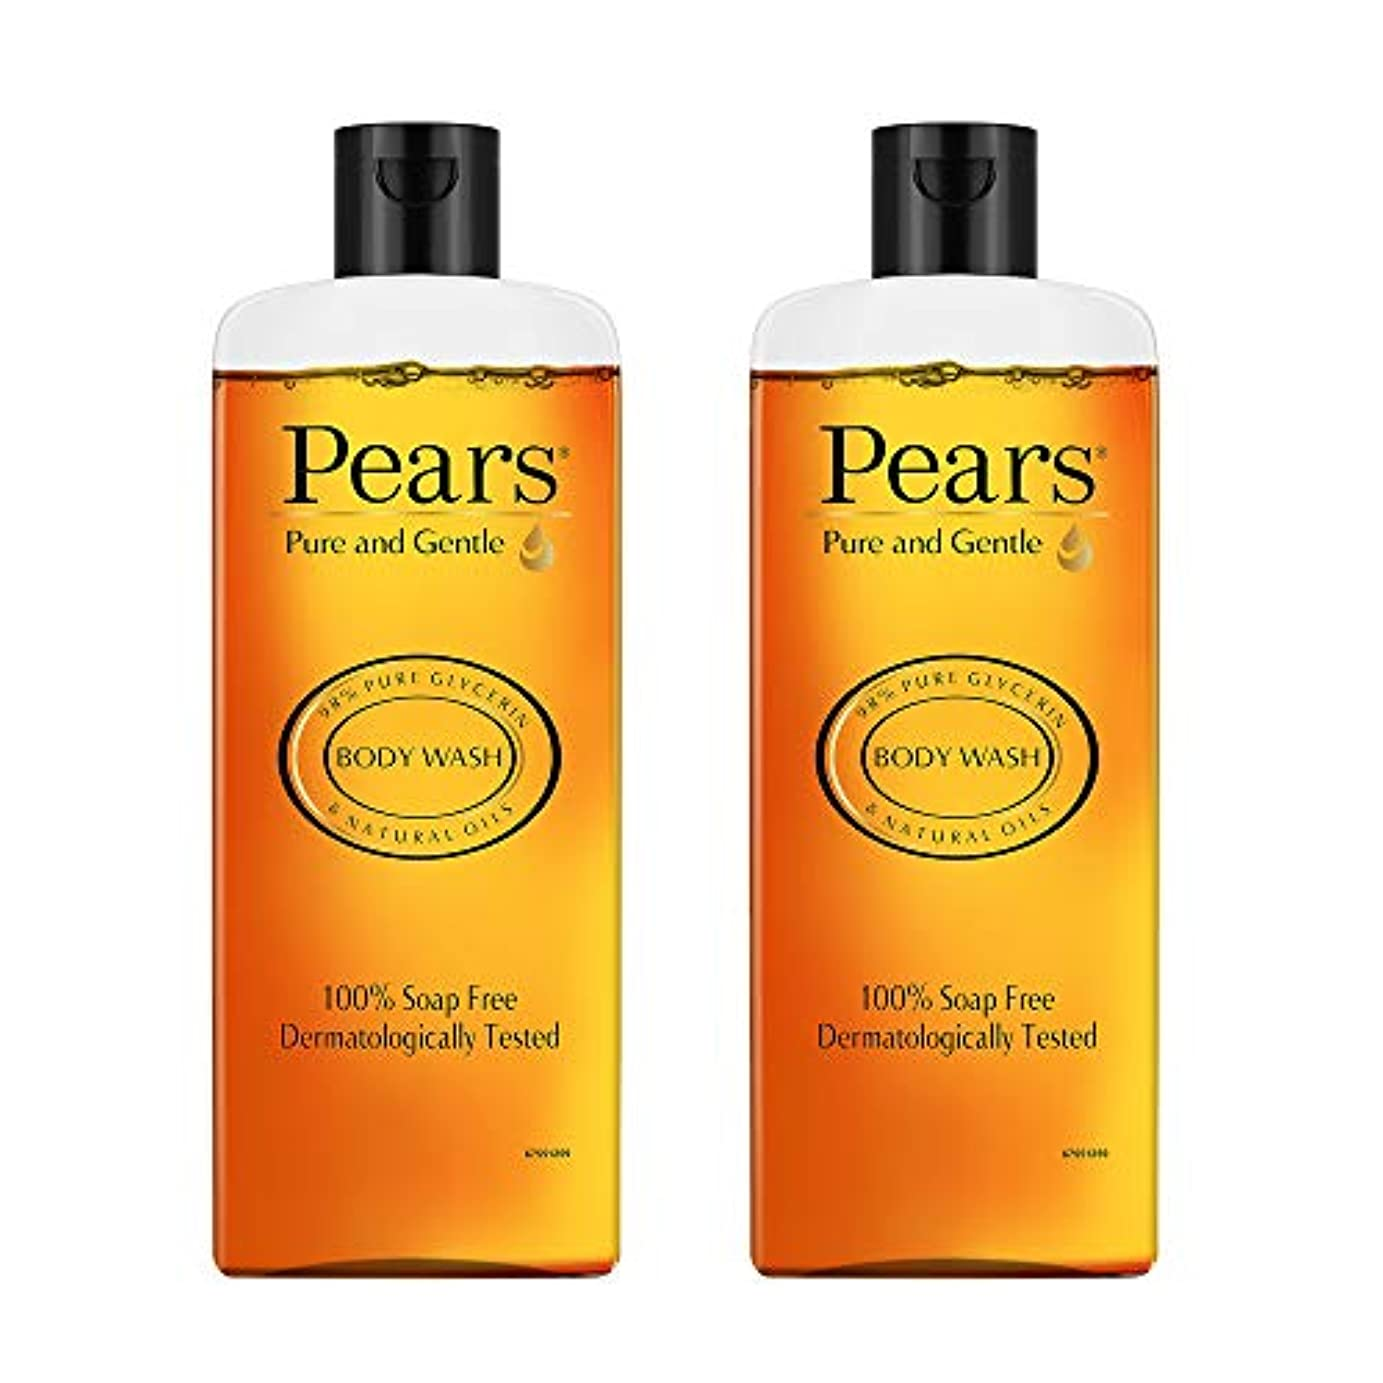 Pears Pure And Gentle Body Wash, 250ml (Pack Of 2)